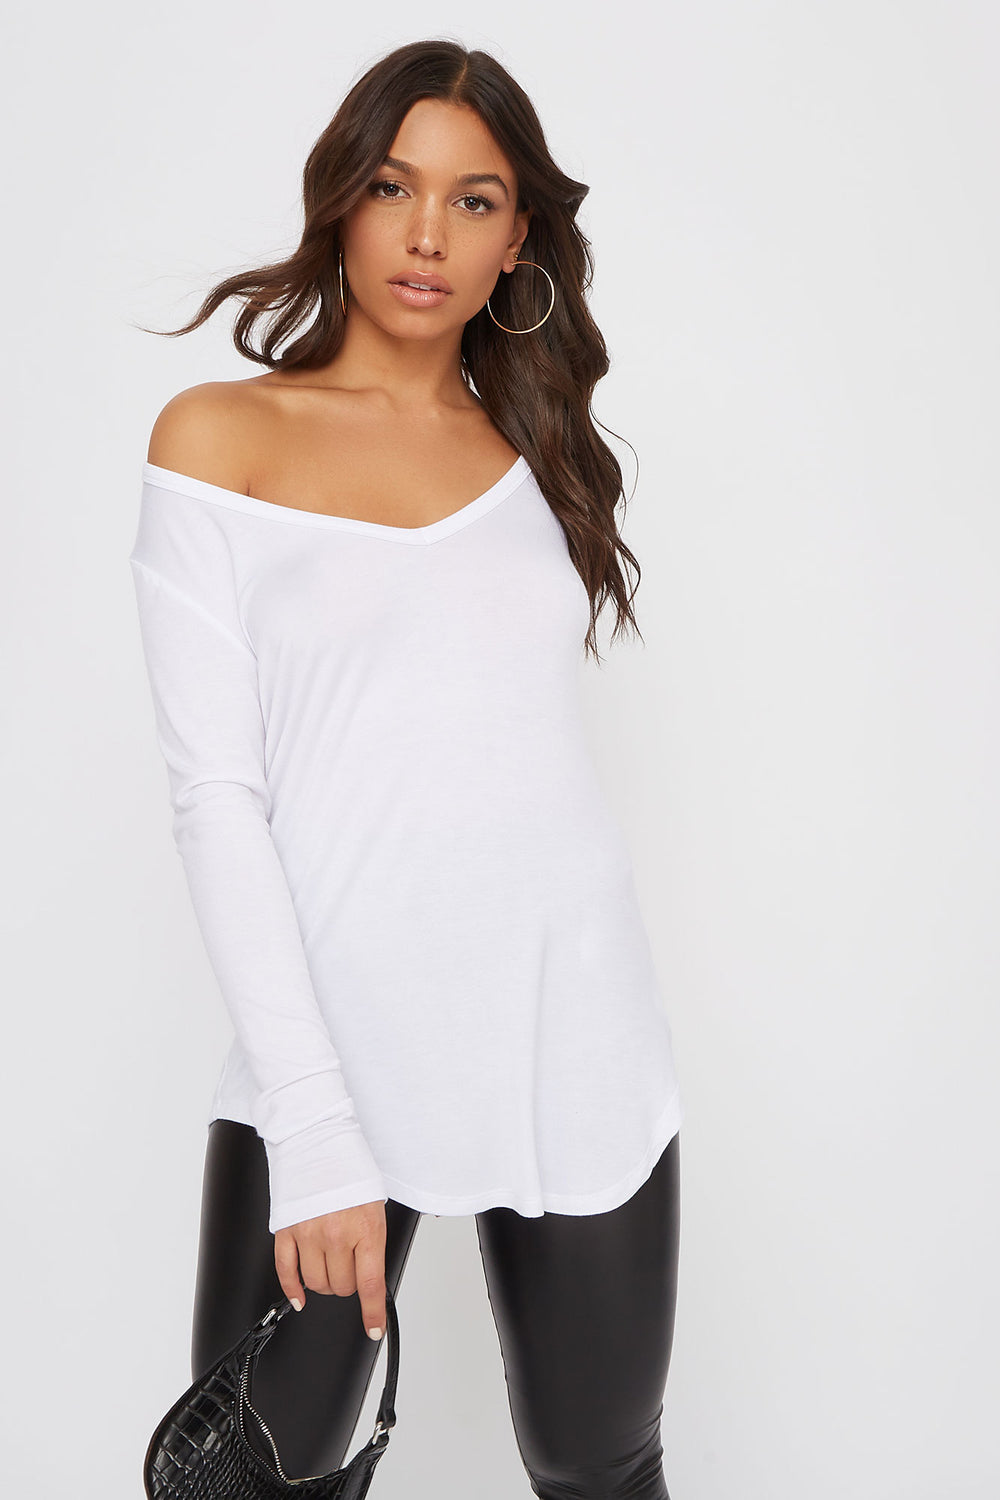 V-Neck Long Sleeve White